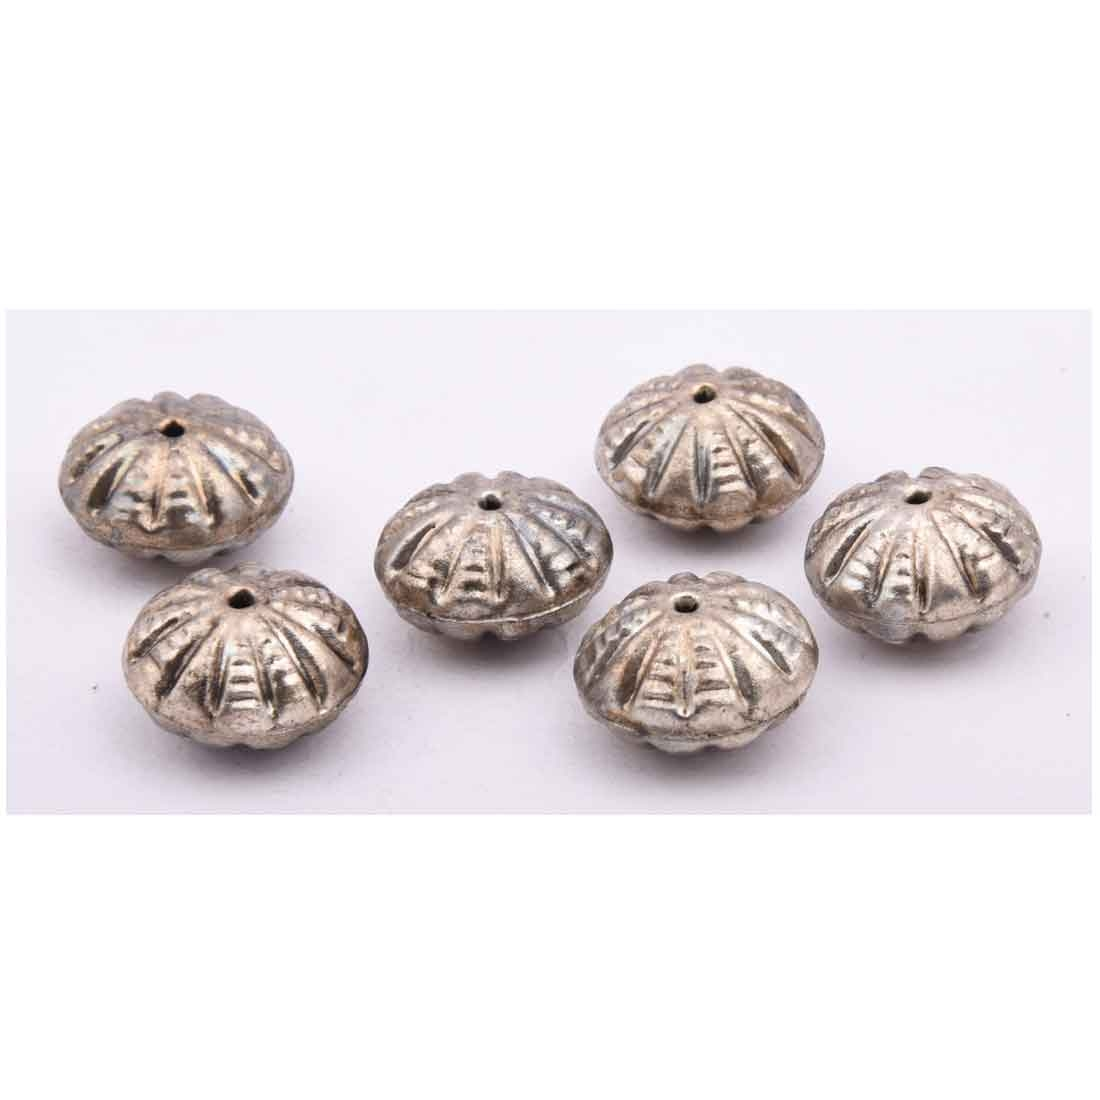 Beads India 1700053  Handcrafted Metal Beads/Discounts Above 500 pcs